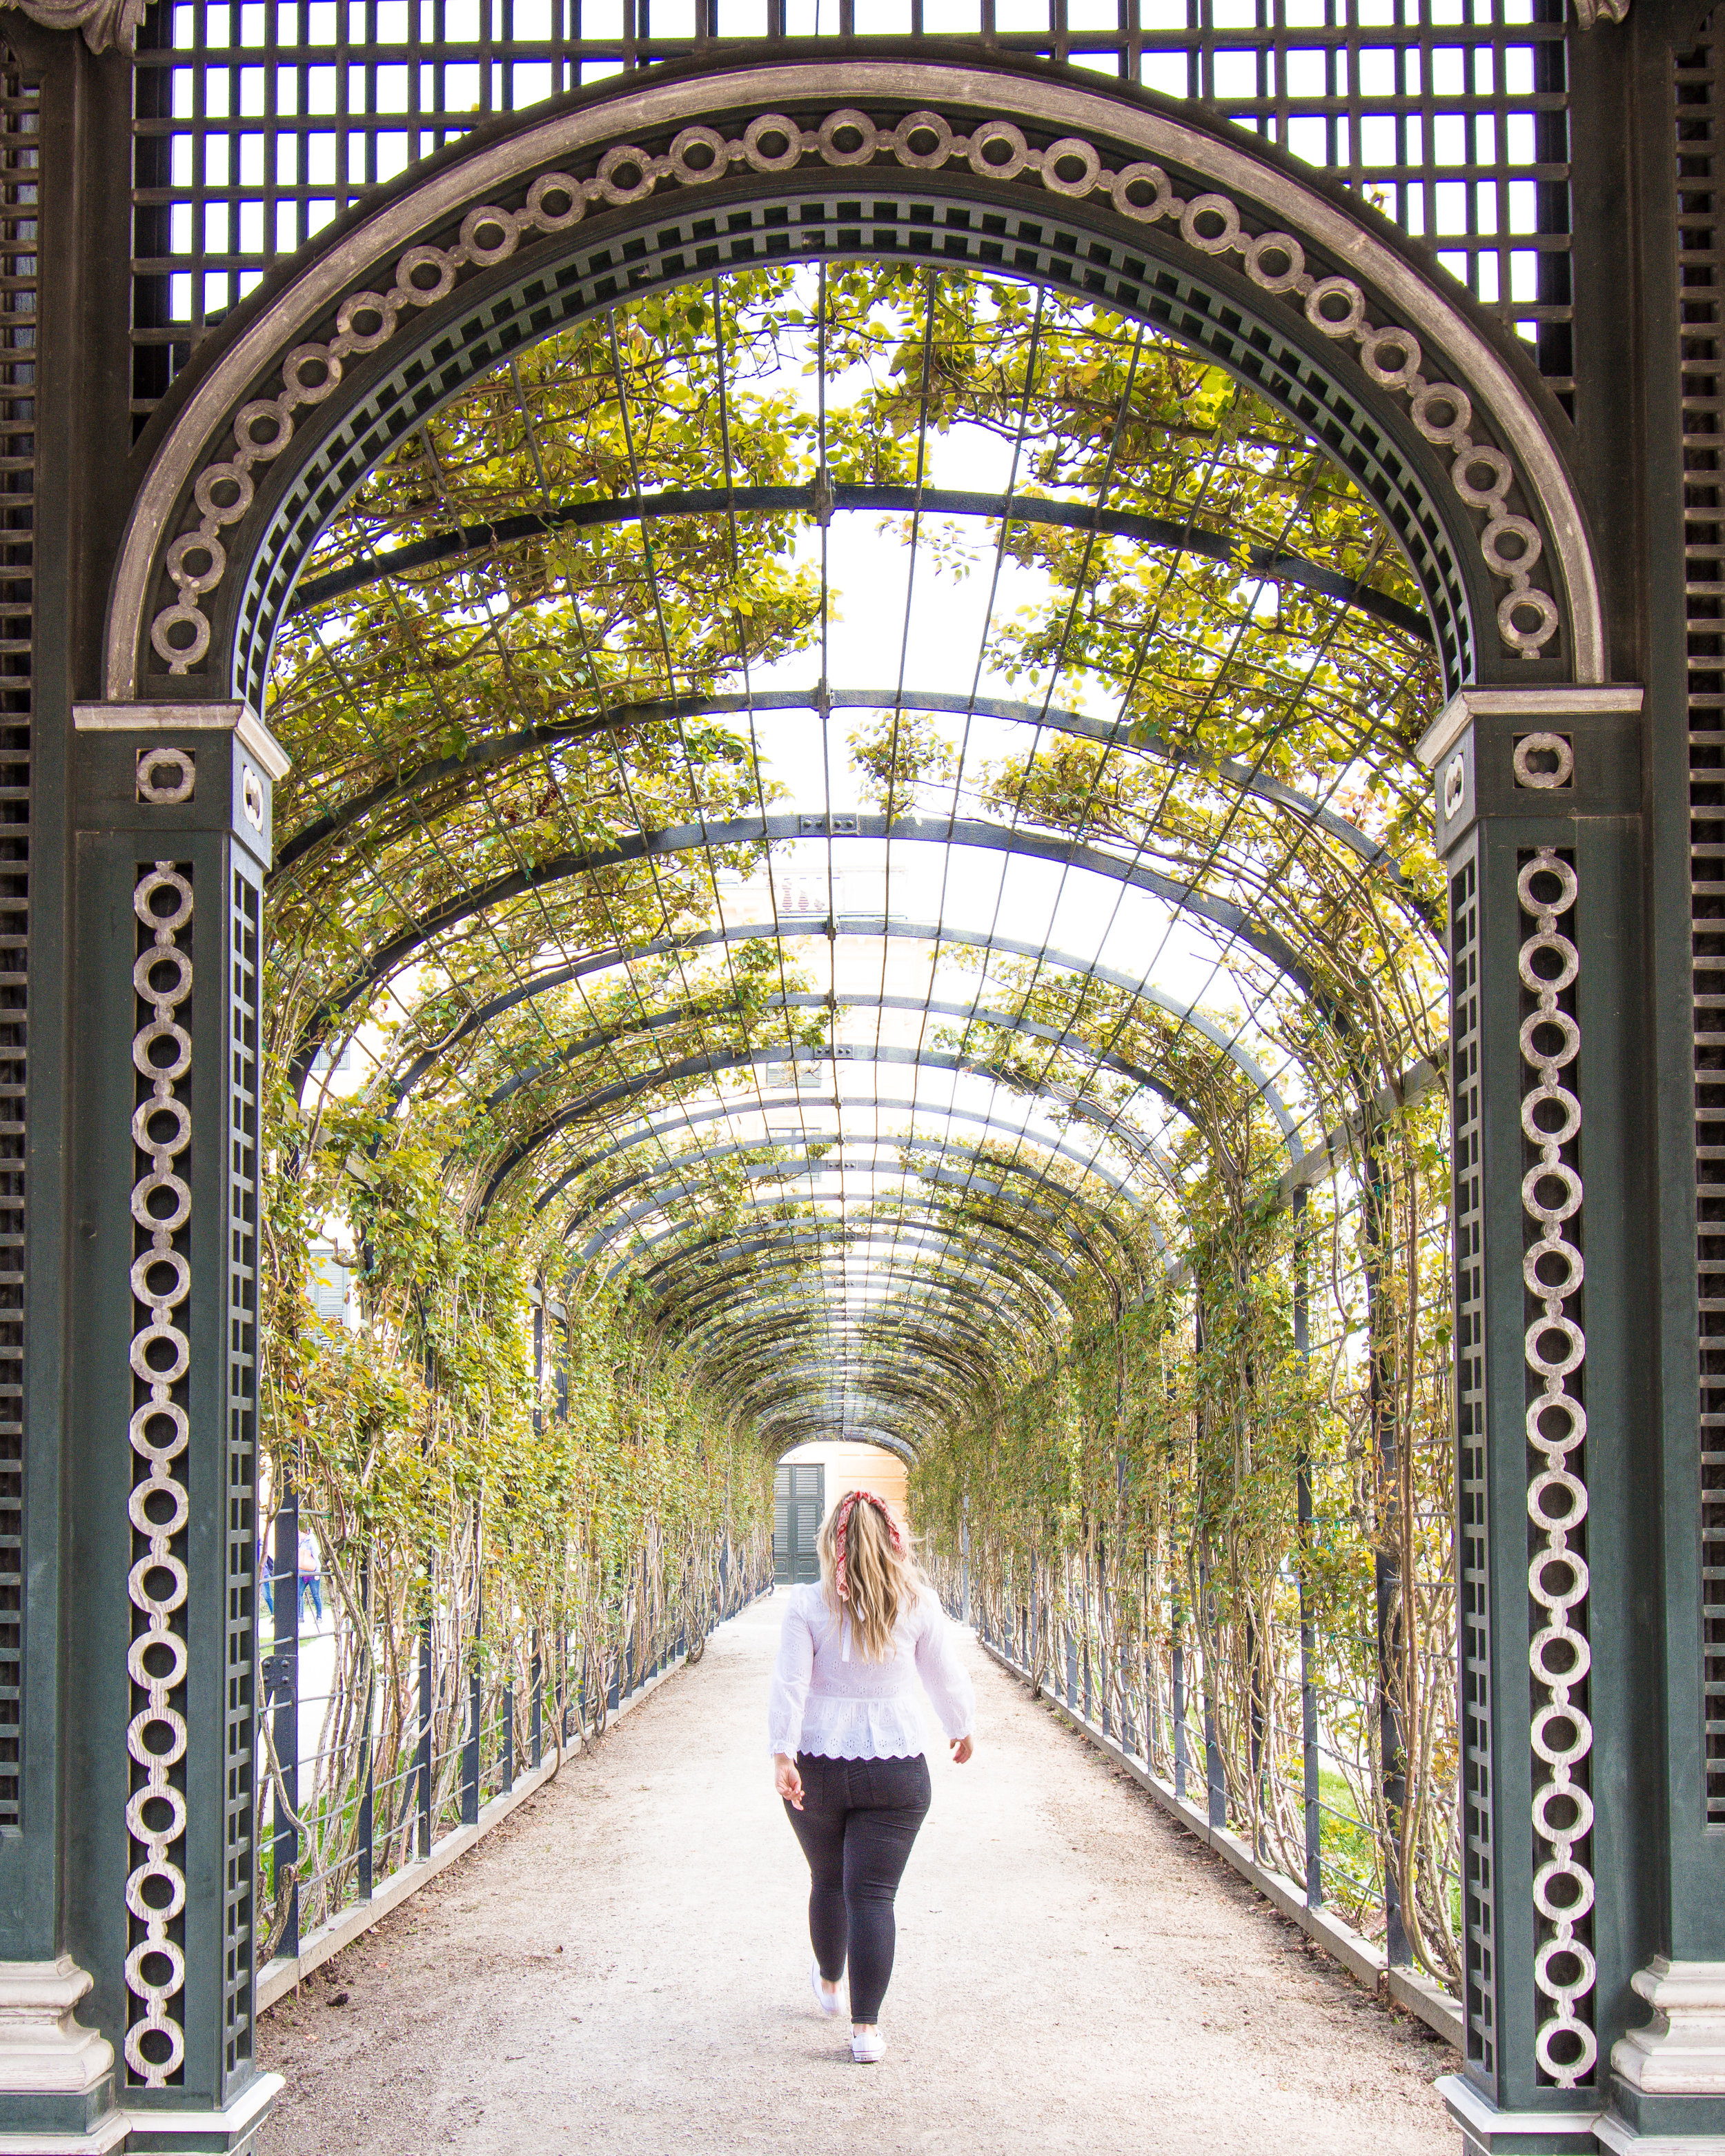 Make sure to walk around behind Schonbrunn Palace and view the gardens for free.  They are stunning, made even more impressive by their sheer size!